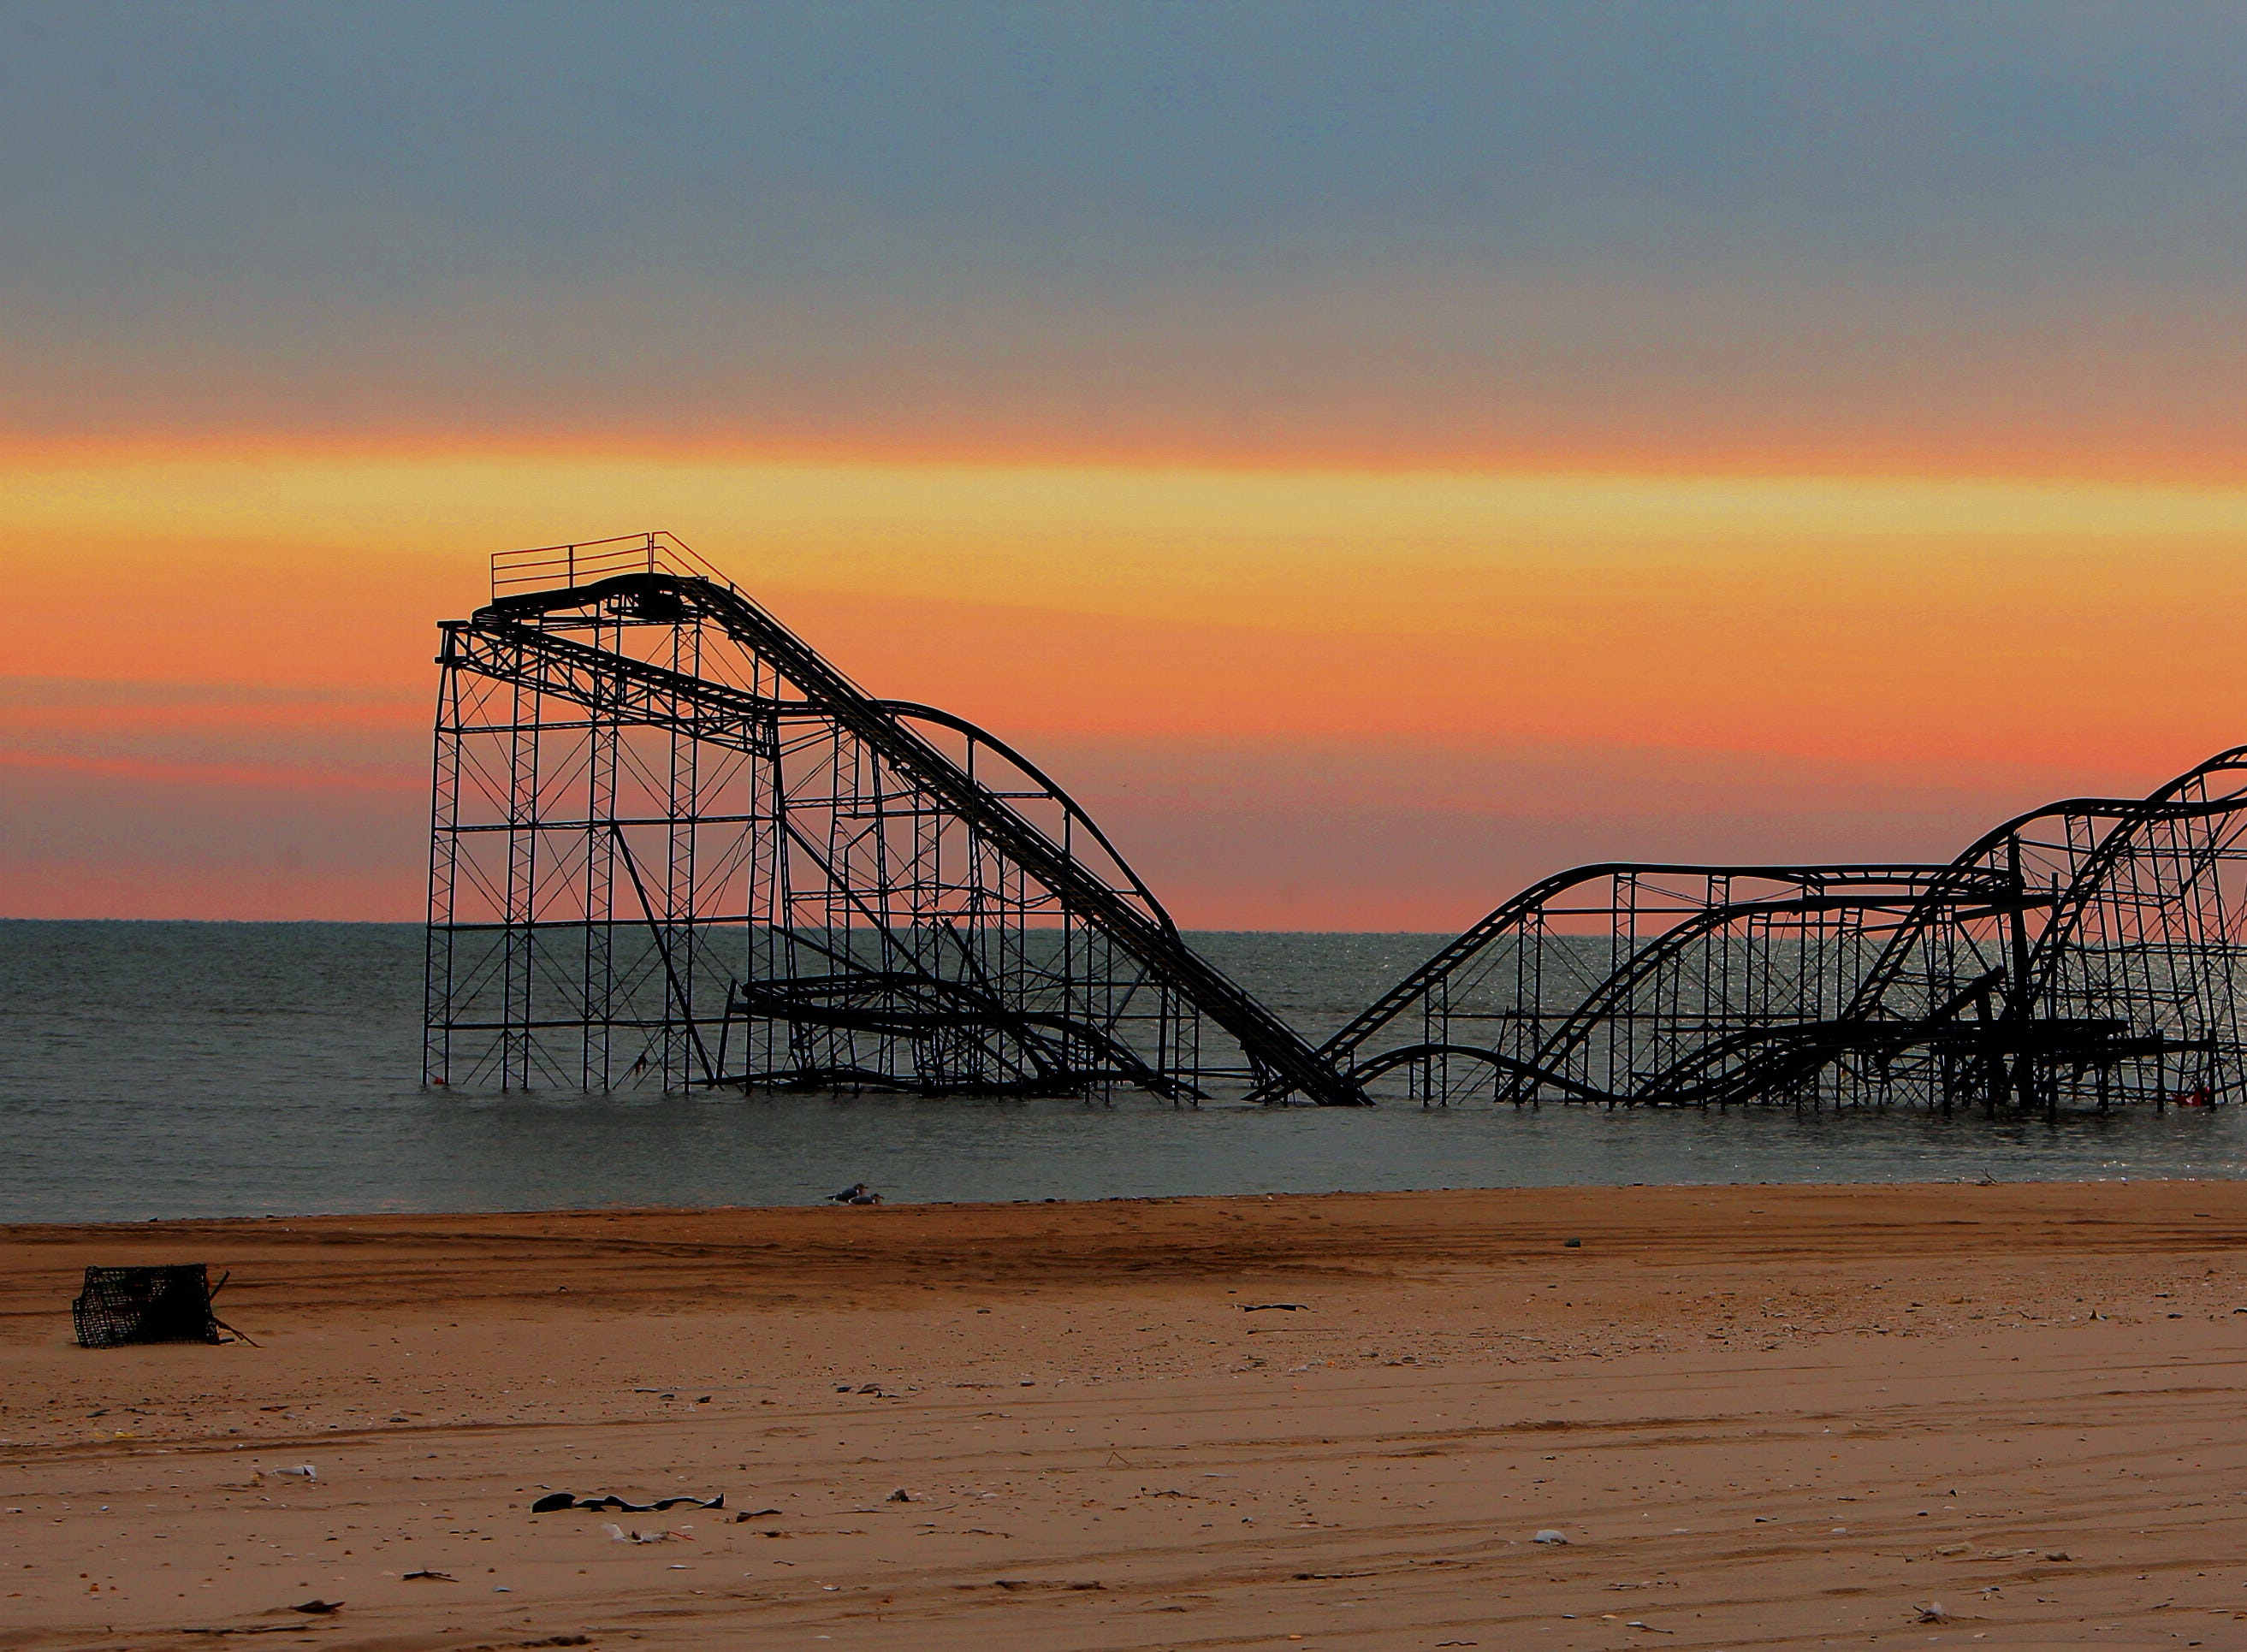 The sun rises behind the Jet Star, perhaps the most iconic symbol of Superstorm Sandy's devastation at the Jersey shore, the roller coaster plunged off an amusement pier in Seaside Heights during the October storm. December 31, 2012. Seaside Heights, N.J.